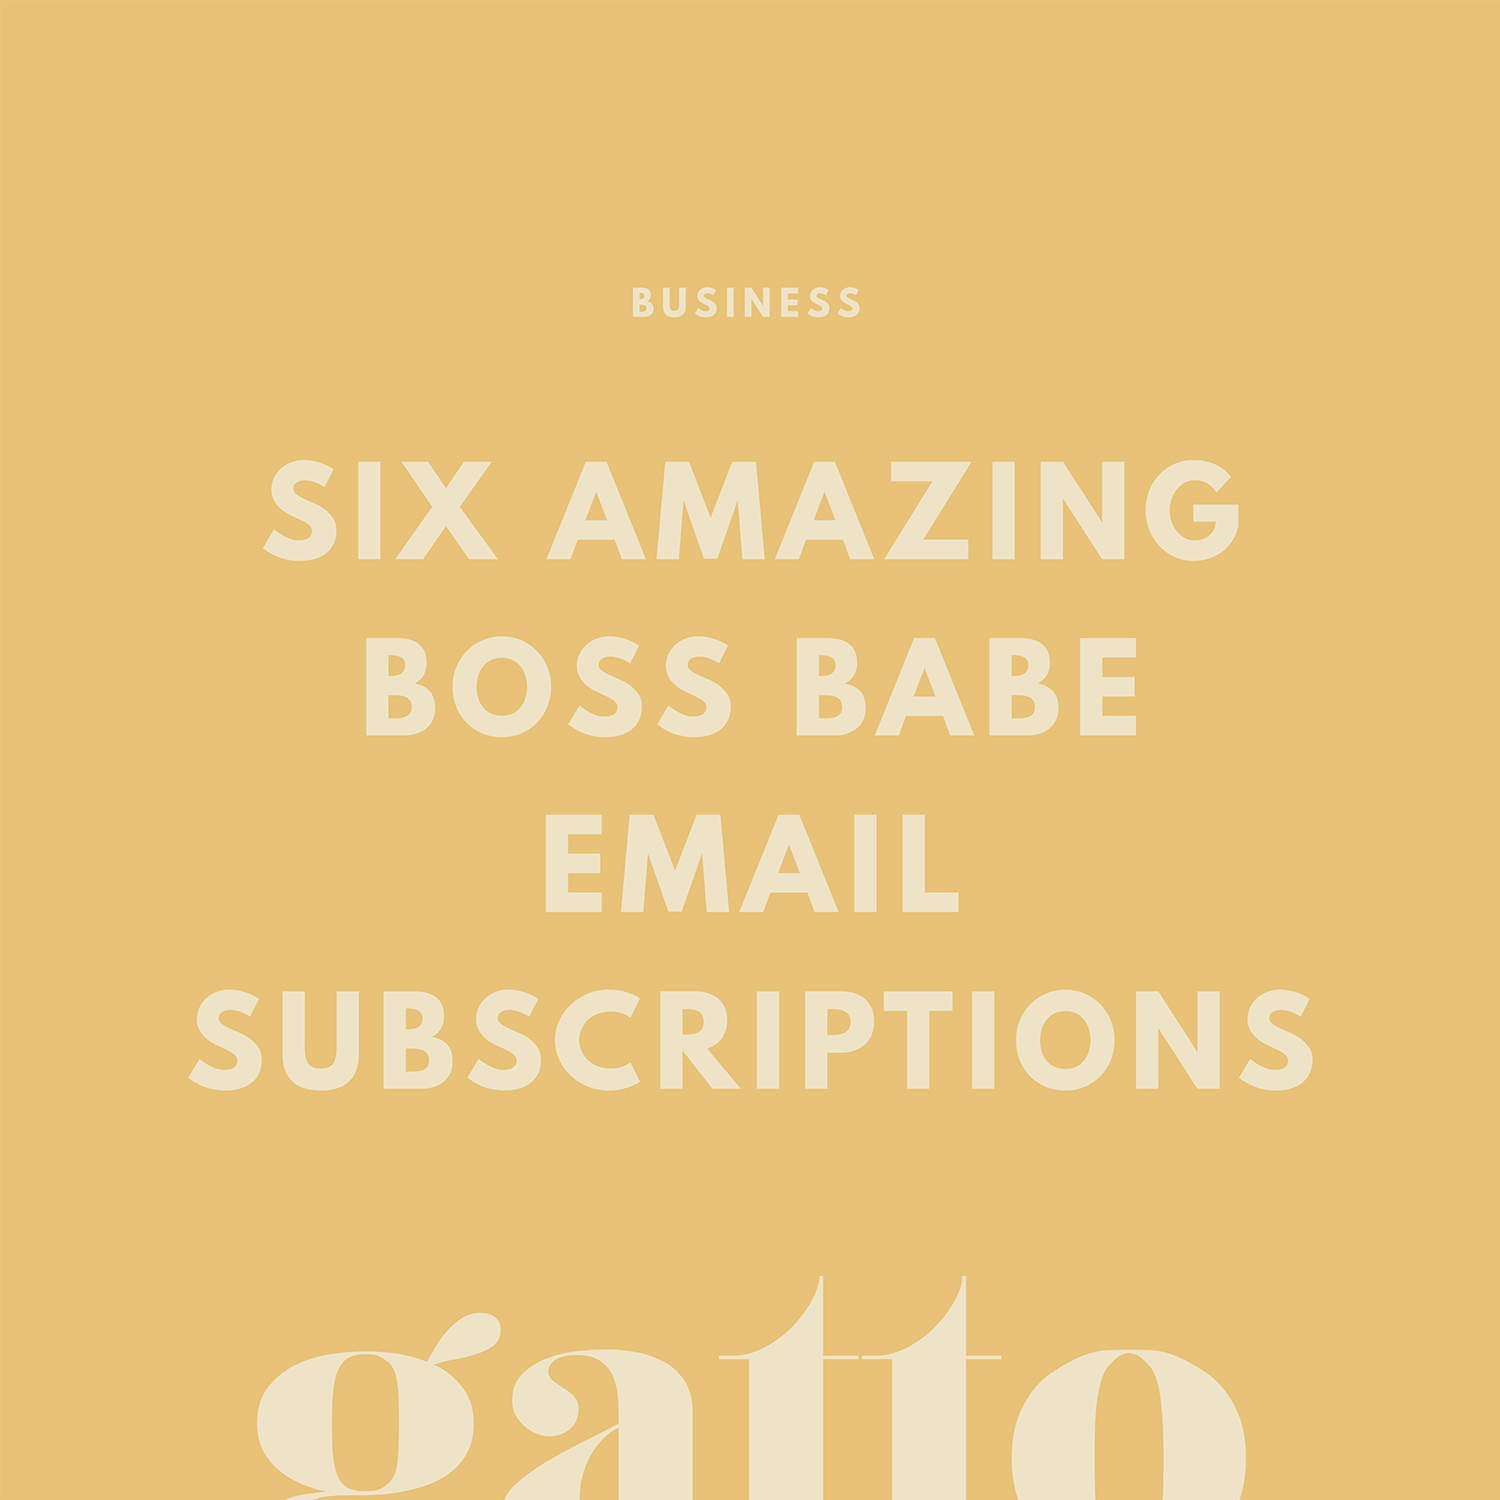 Girl Boss Email Subscriptions | Email Marketing | Business Newsletter Tips | Creative Biz